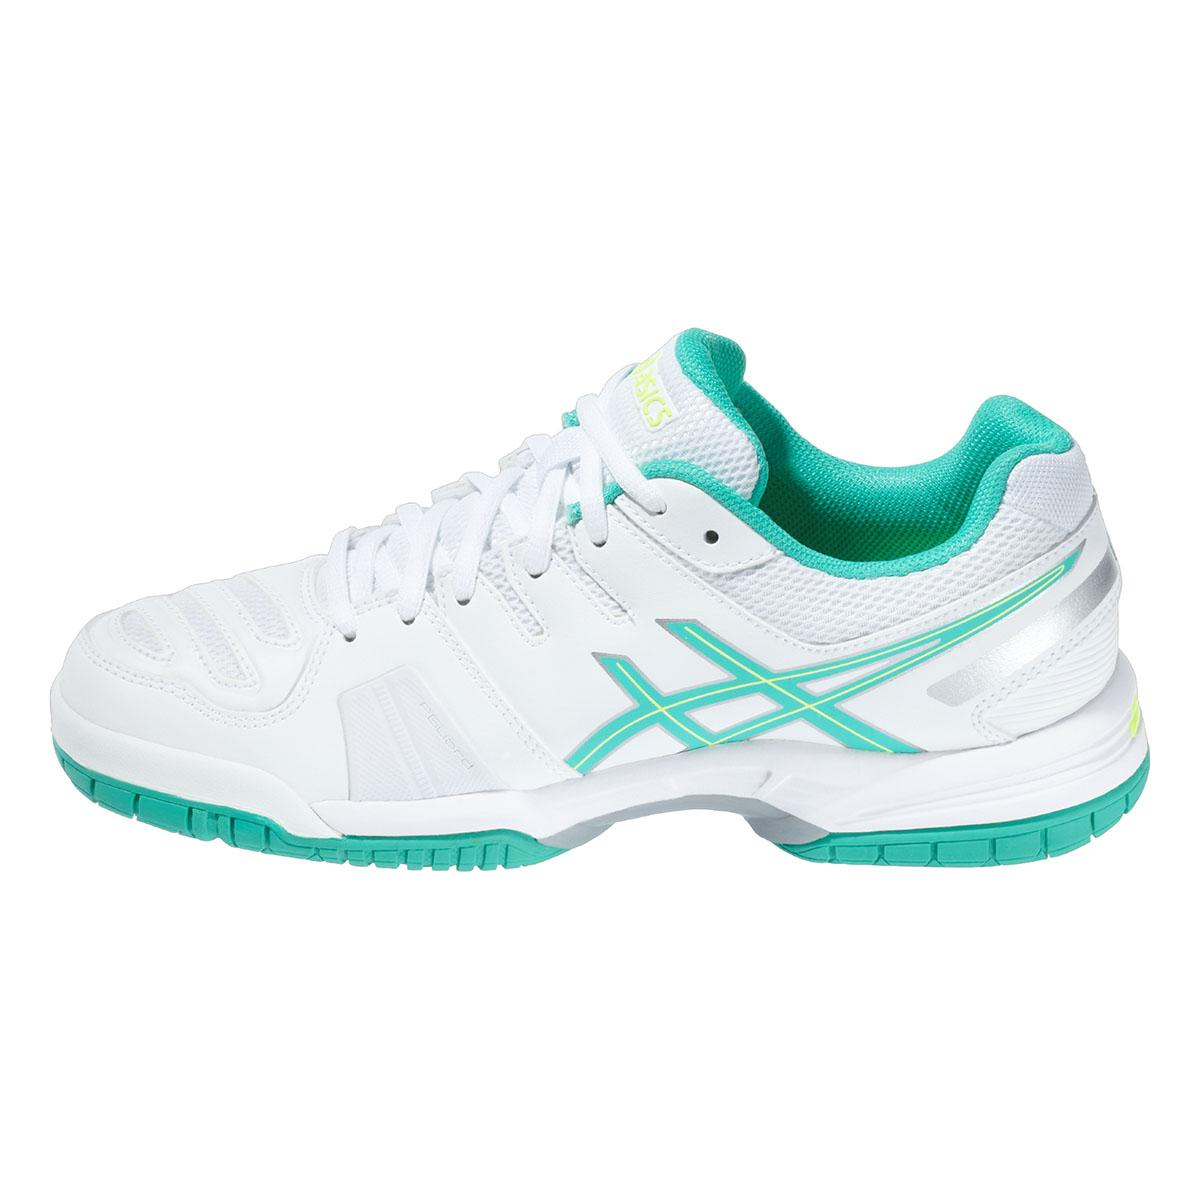 asics womens gel 5 oc tennis shoes white mint